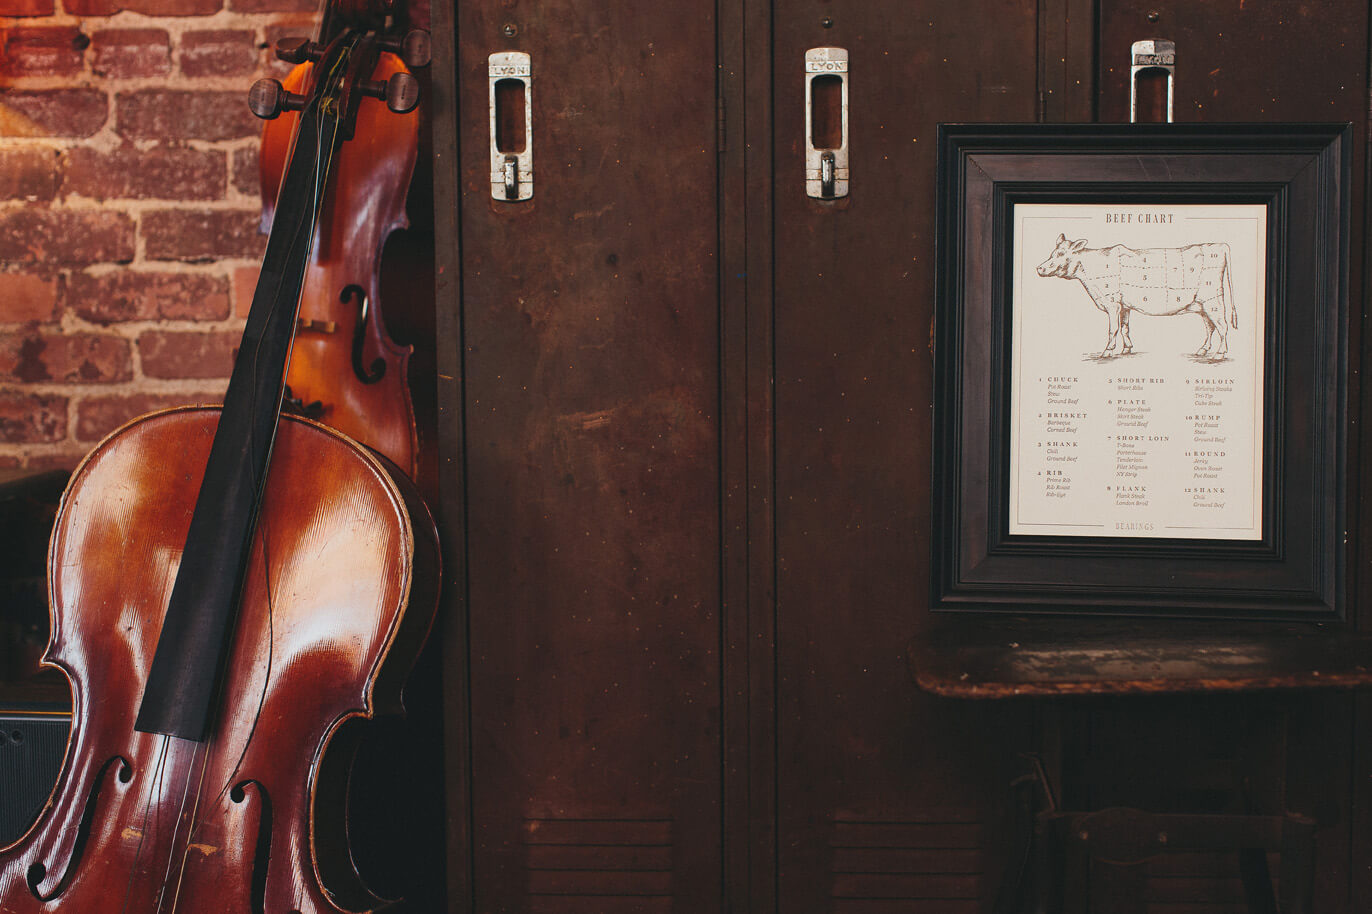 Hand drawn illustrated fine art print diagram of types of cuts of beef is framed in a dark wood frame and sits in front of lockers and next to an old violin.